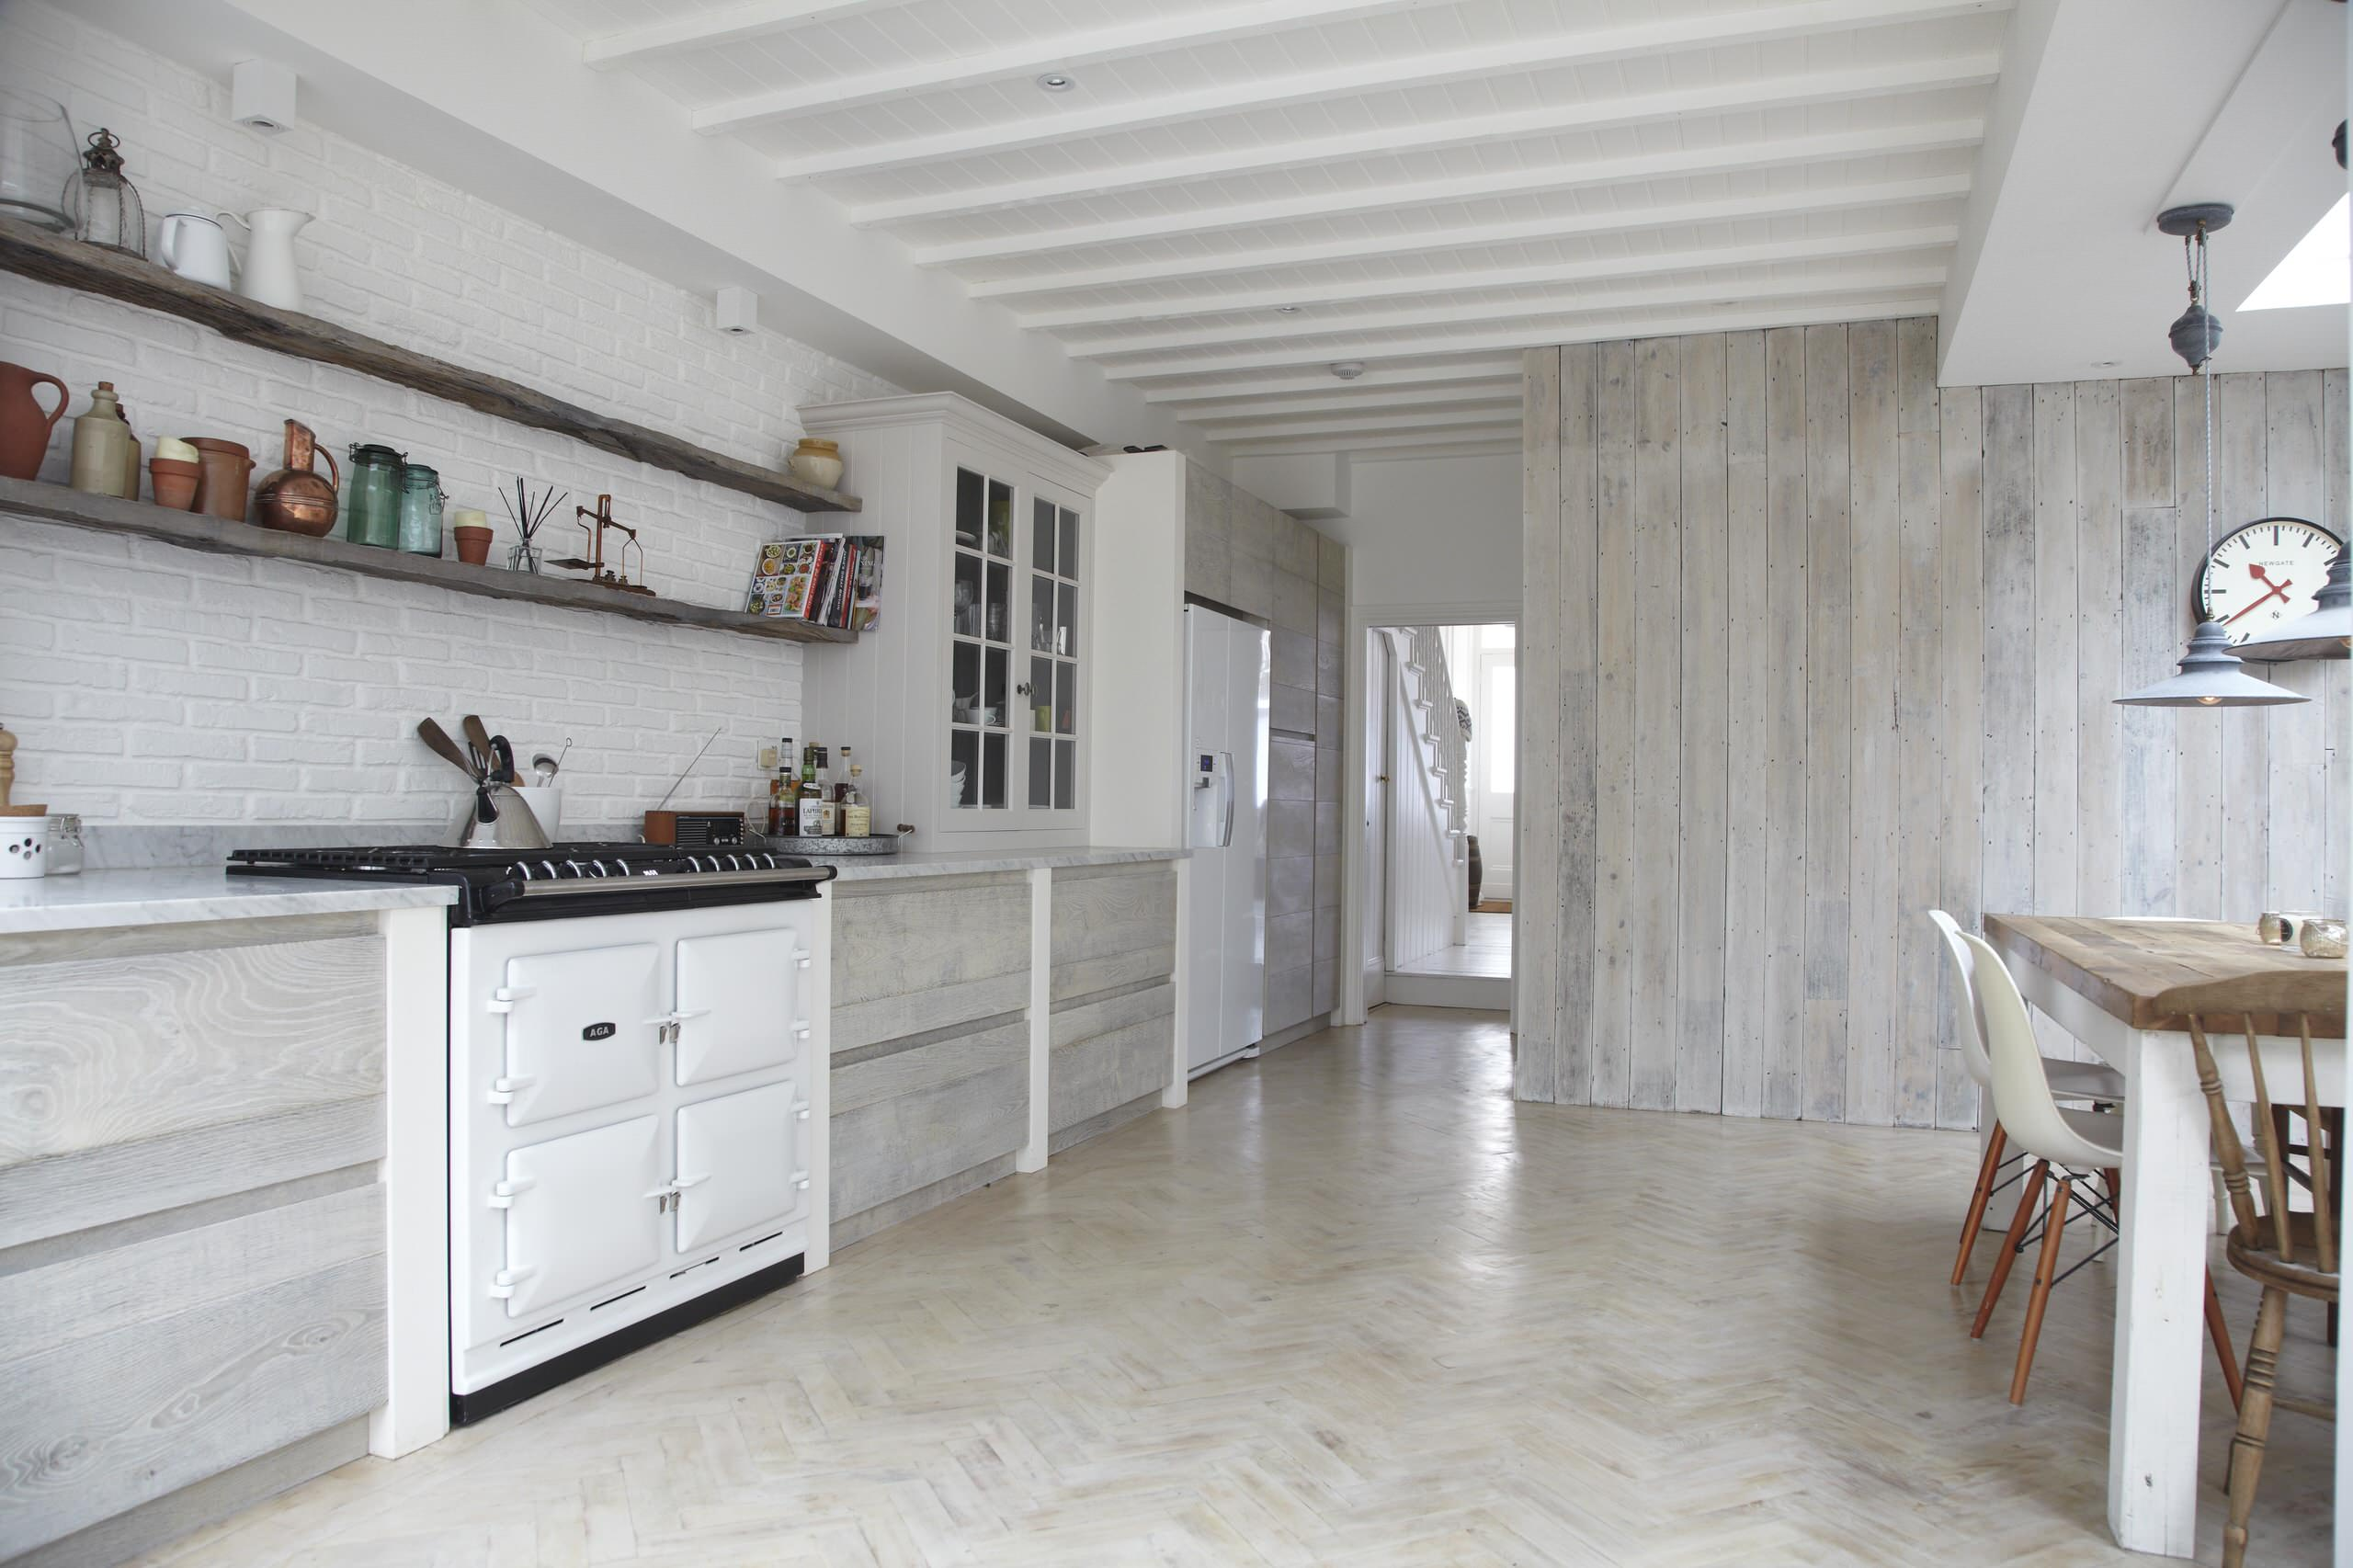 75 Beautiful Kitchen With White Appliances Pictures Ideas January 2021 Houzz